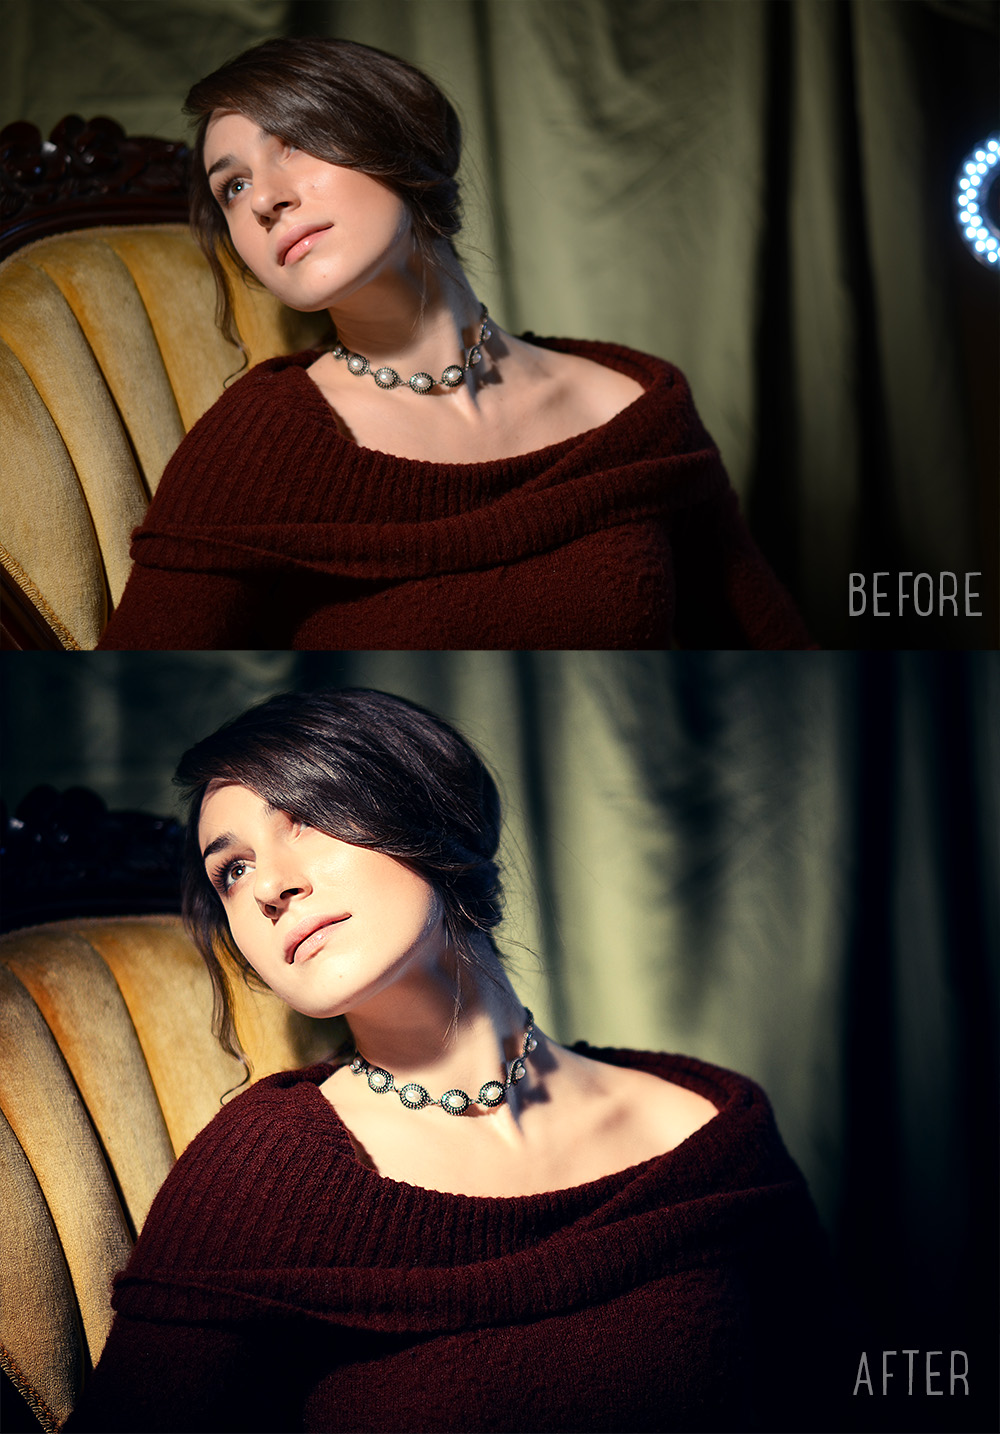 Portrait Photography | Edited photos before and after